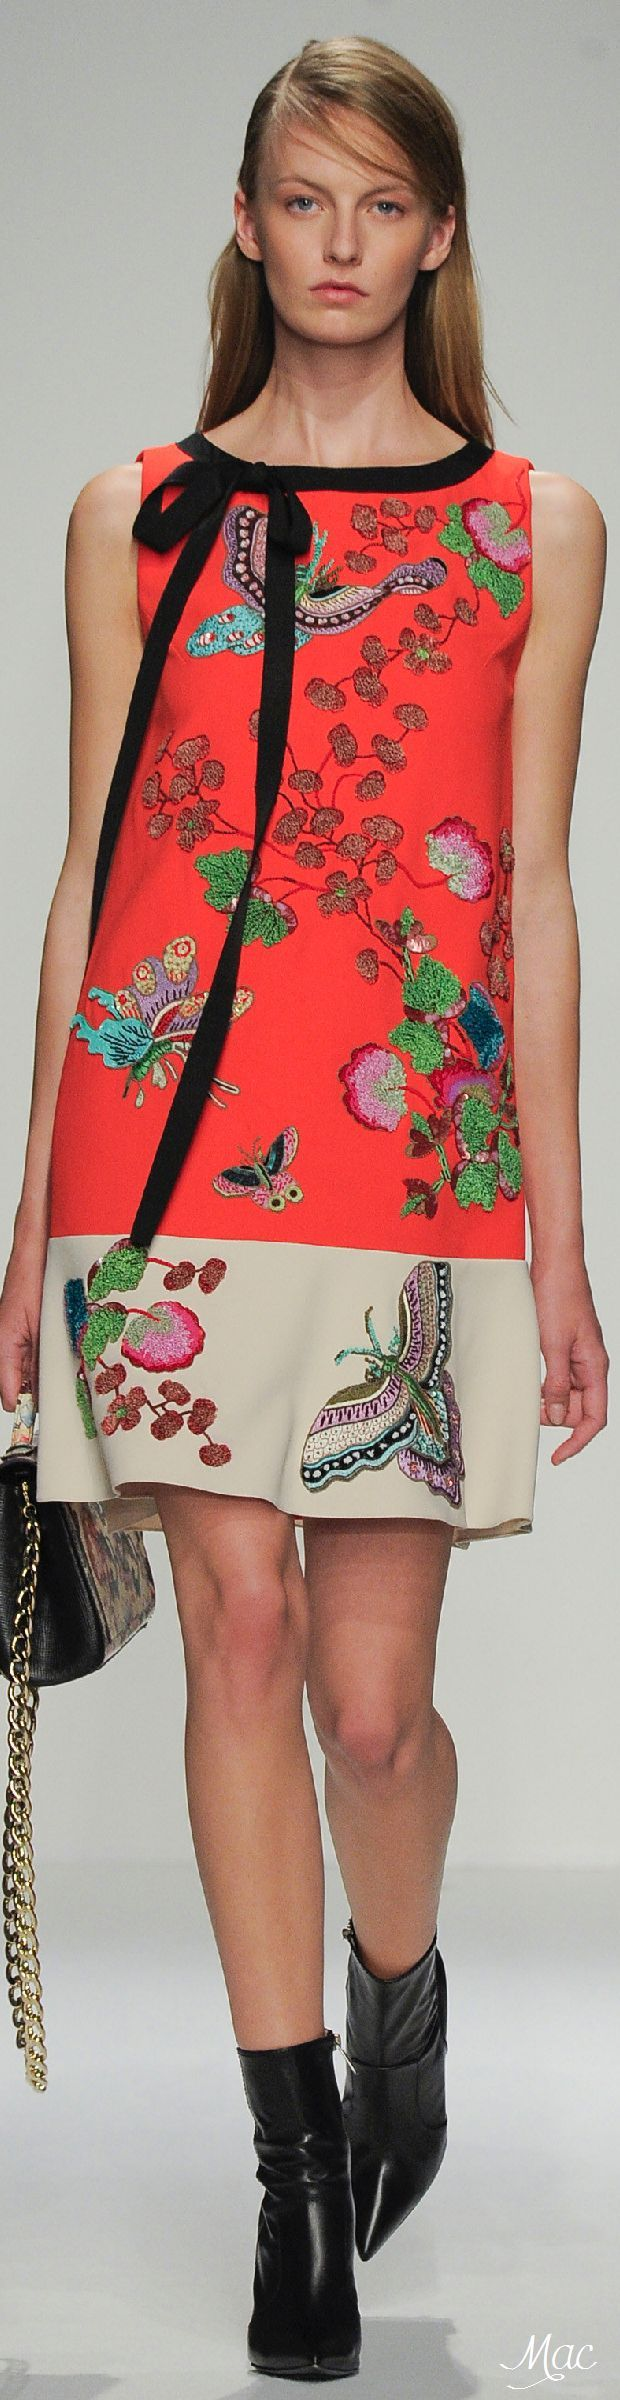 I love this asian inspo pring dress so easy and awesome for a date night or travel! Spring 2016 Andrew Gn